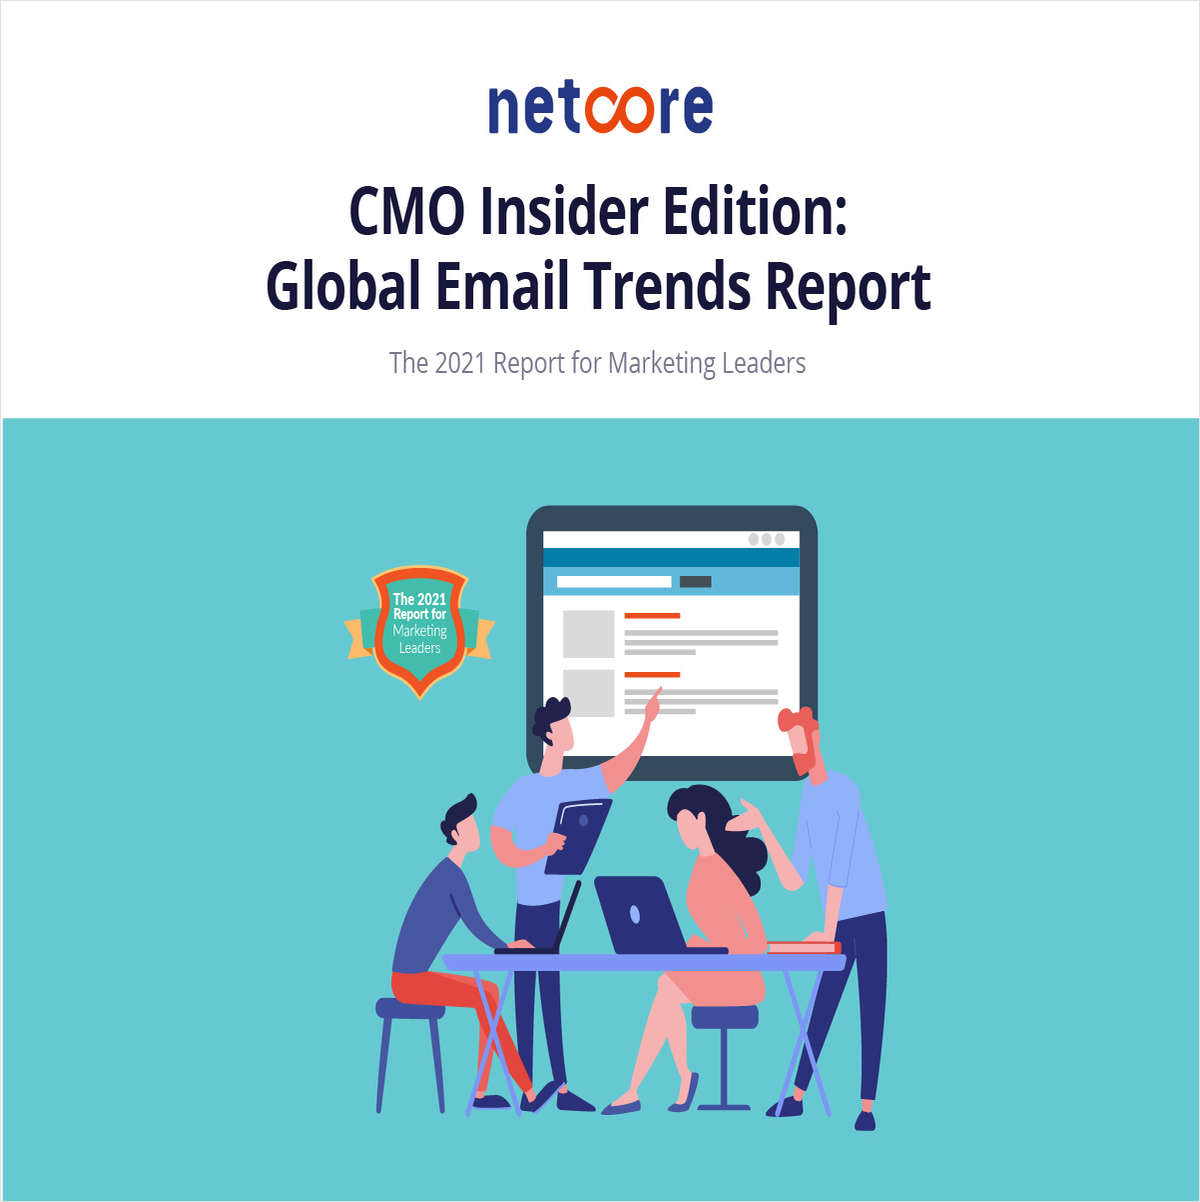 CMO Insider Edition: Global Email Trends Report 2021